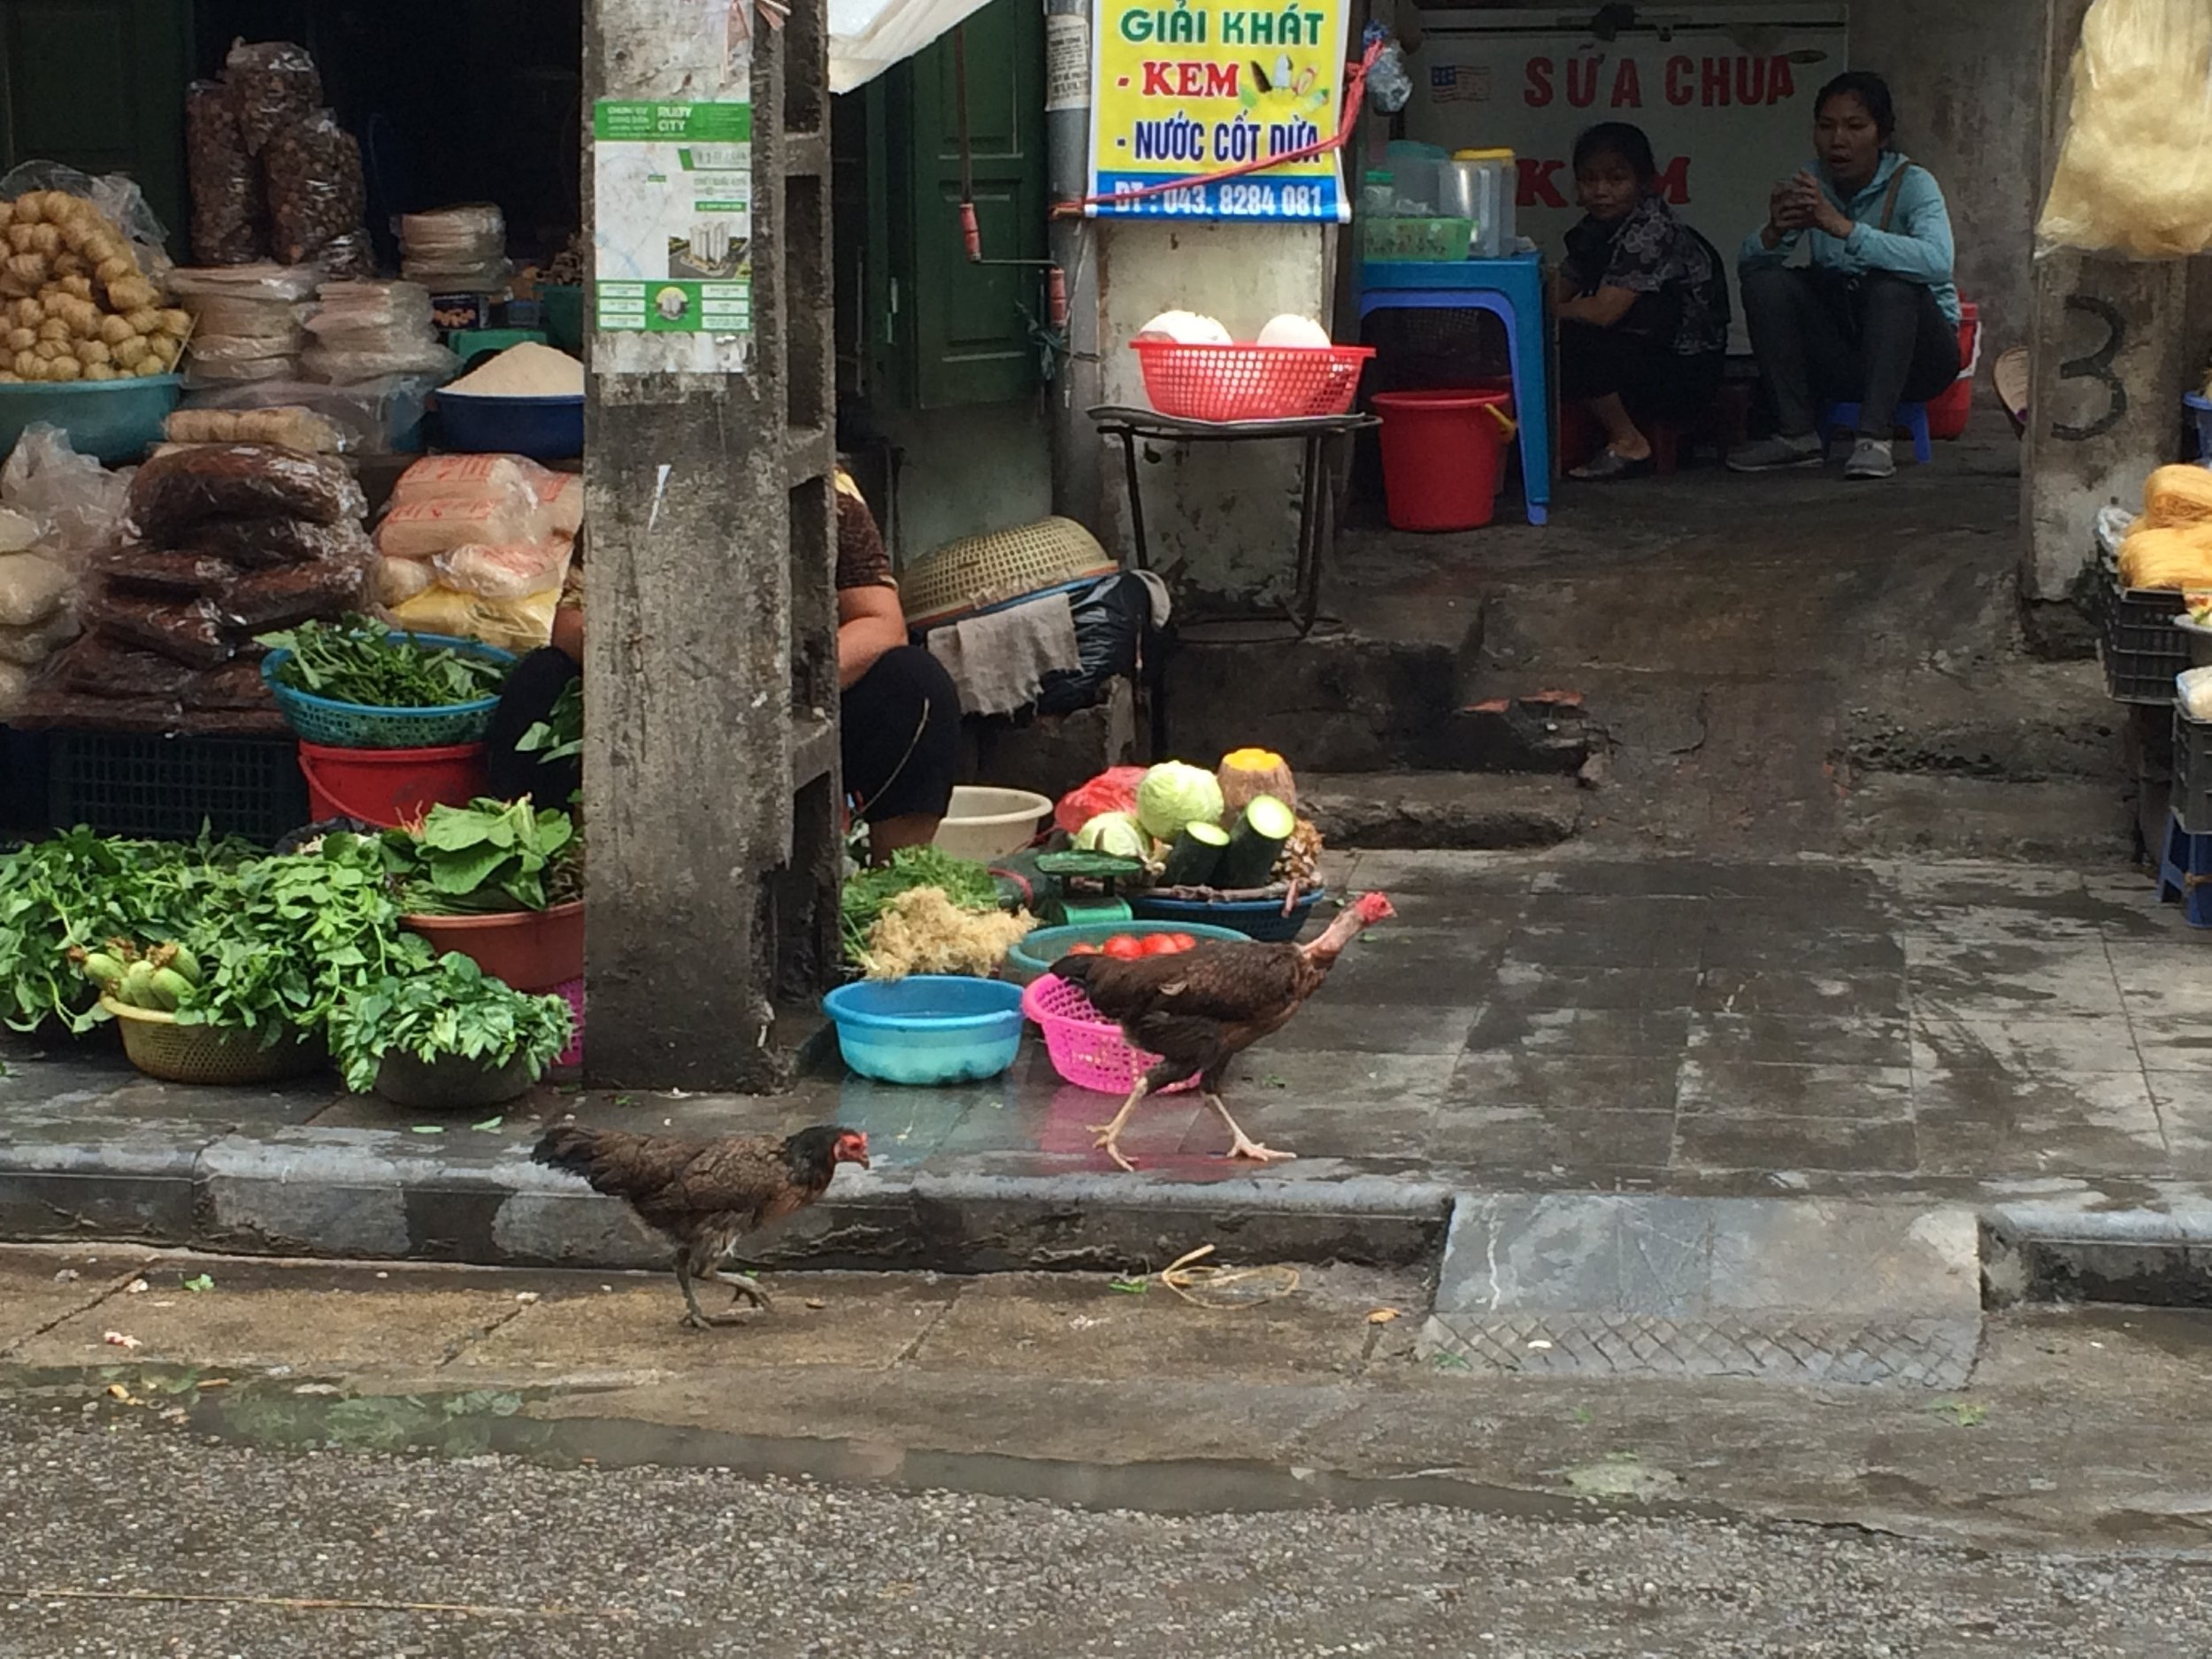 Chickens. Loose. In a city.